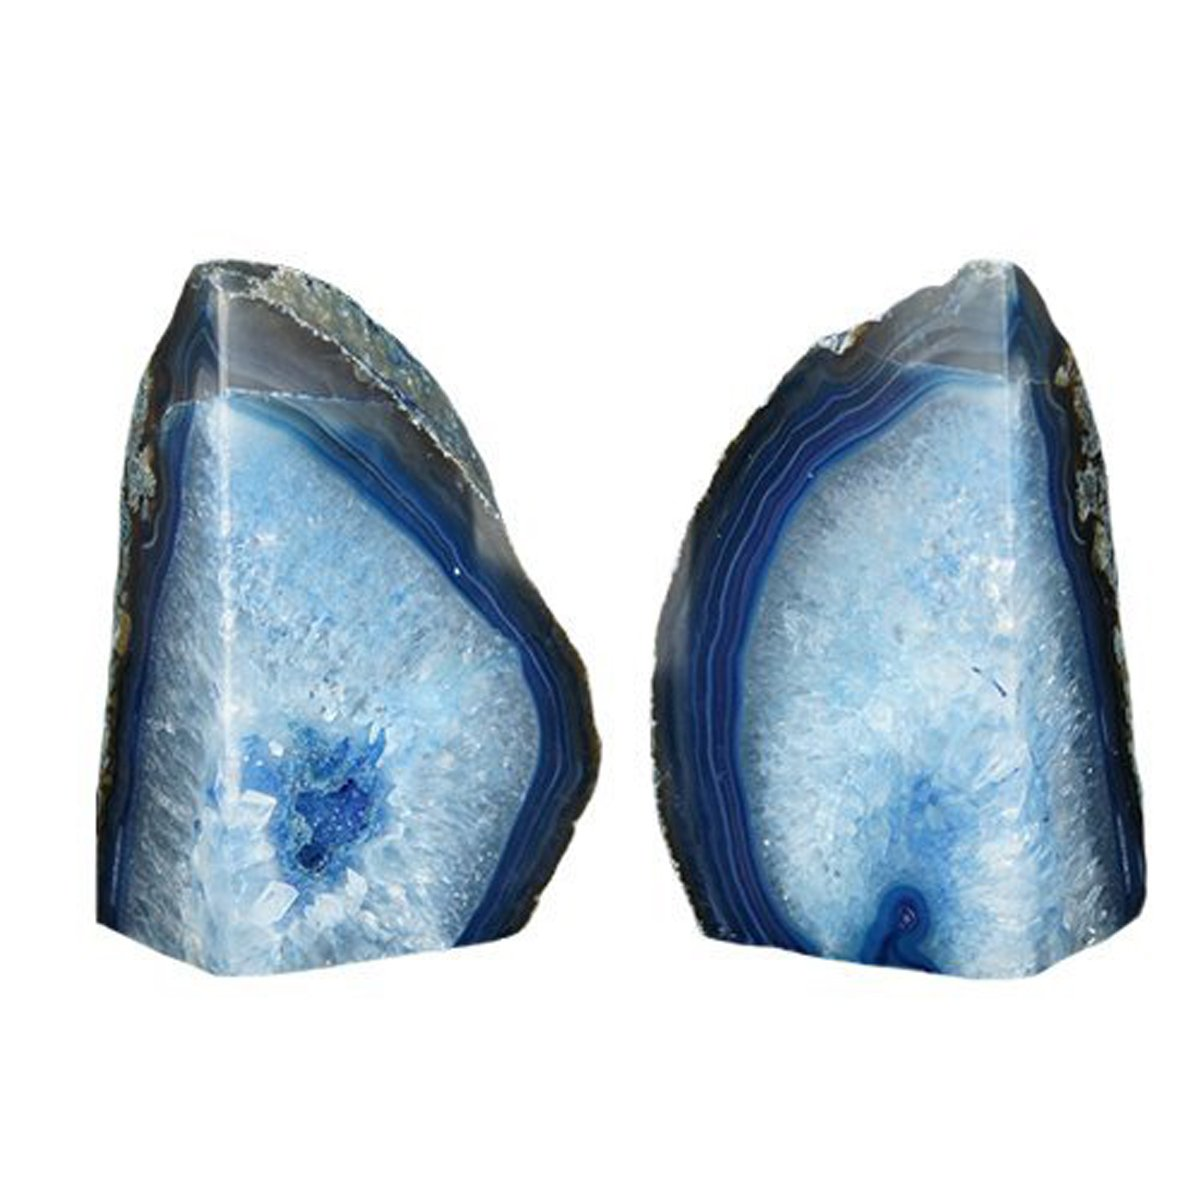 JIC Gem: Polished Dyed Pink Agate Bookend(s) - 1 Pair - 3 to 4 Lbs